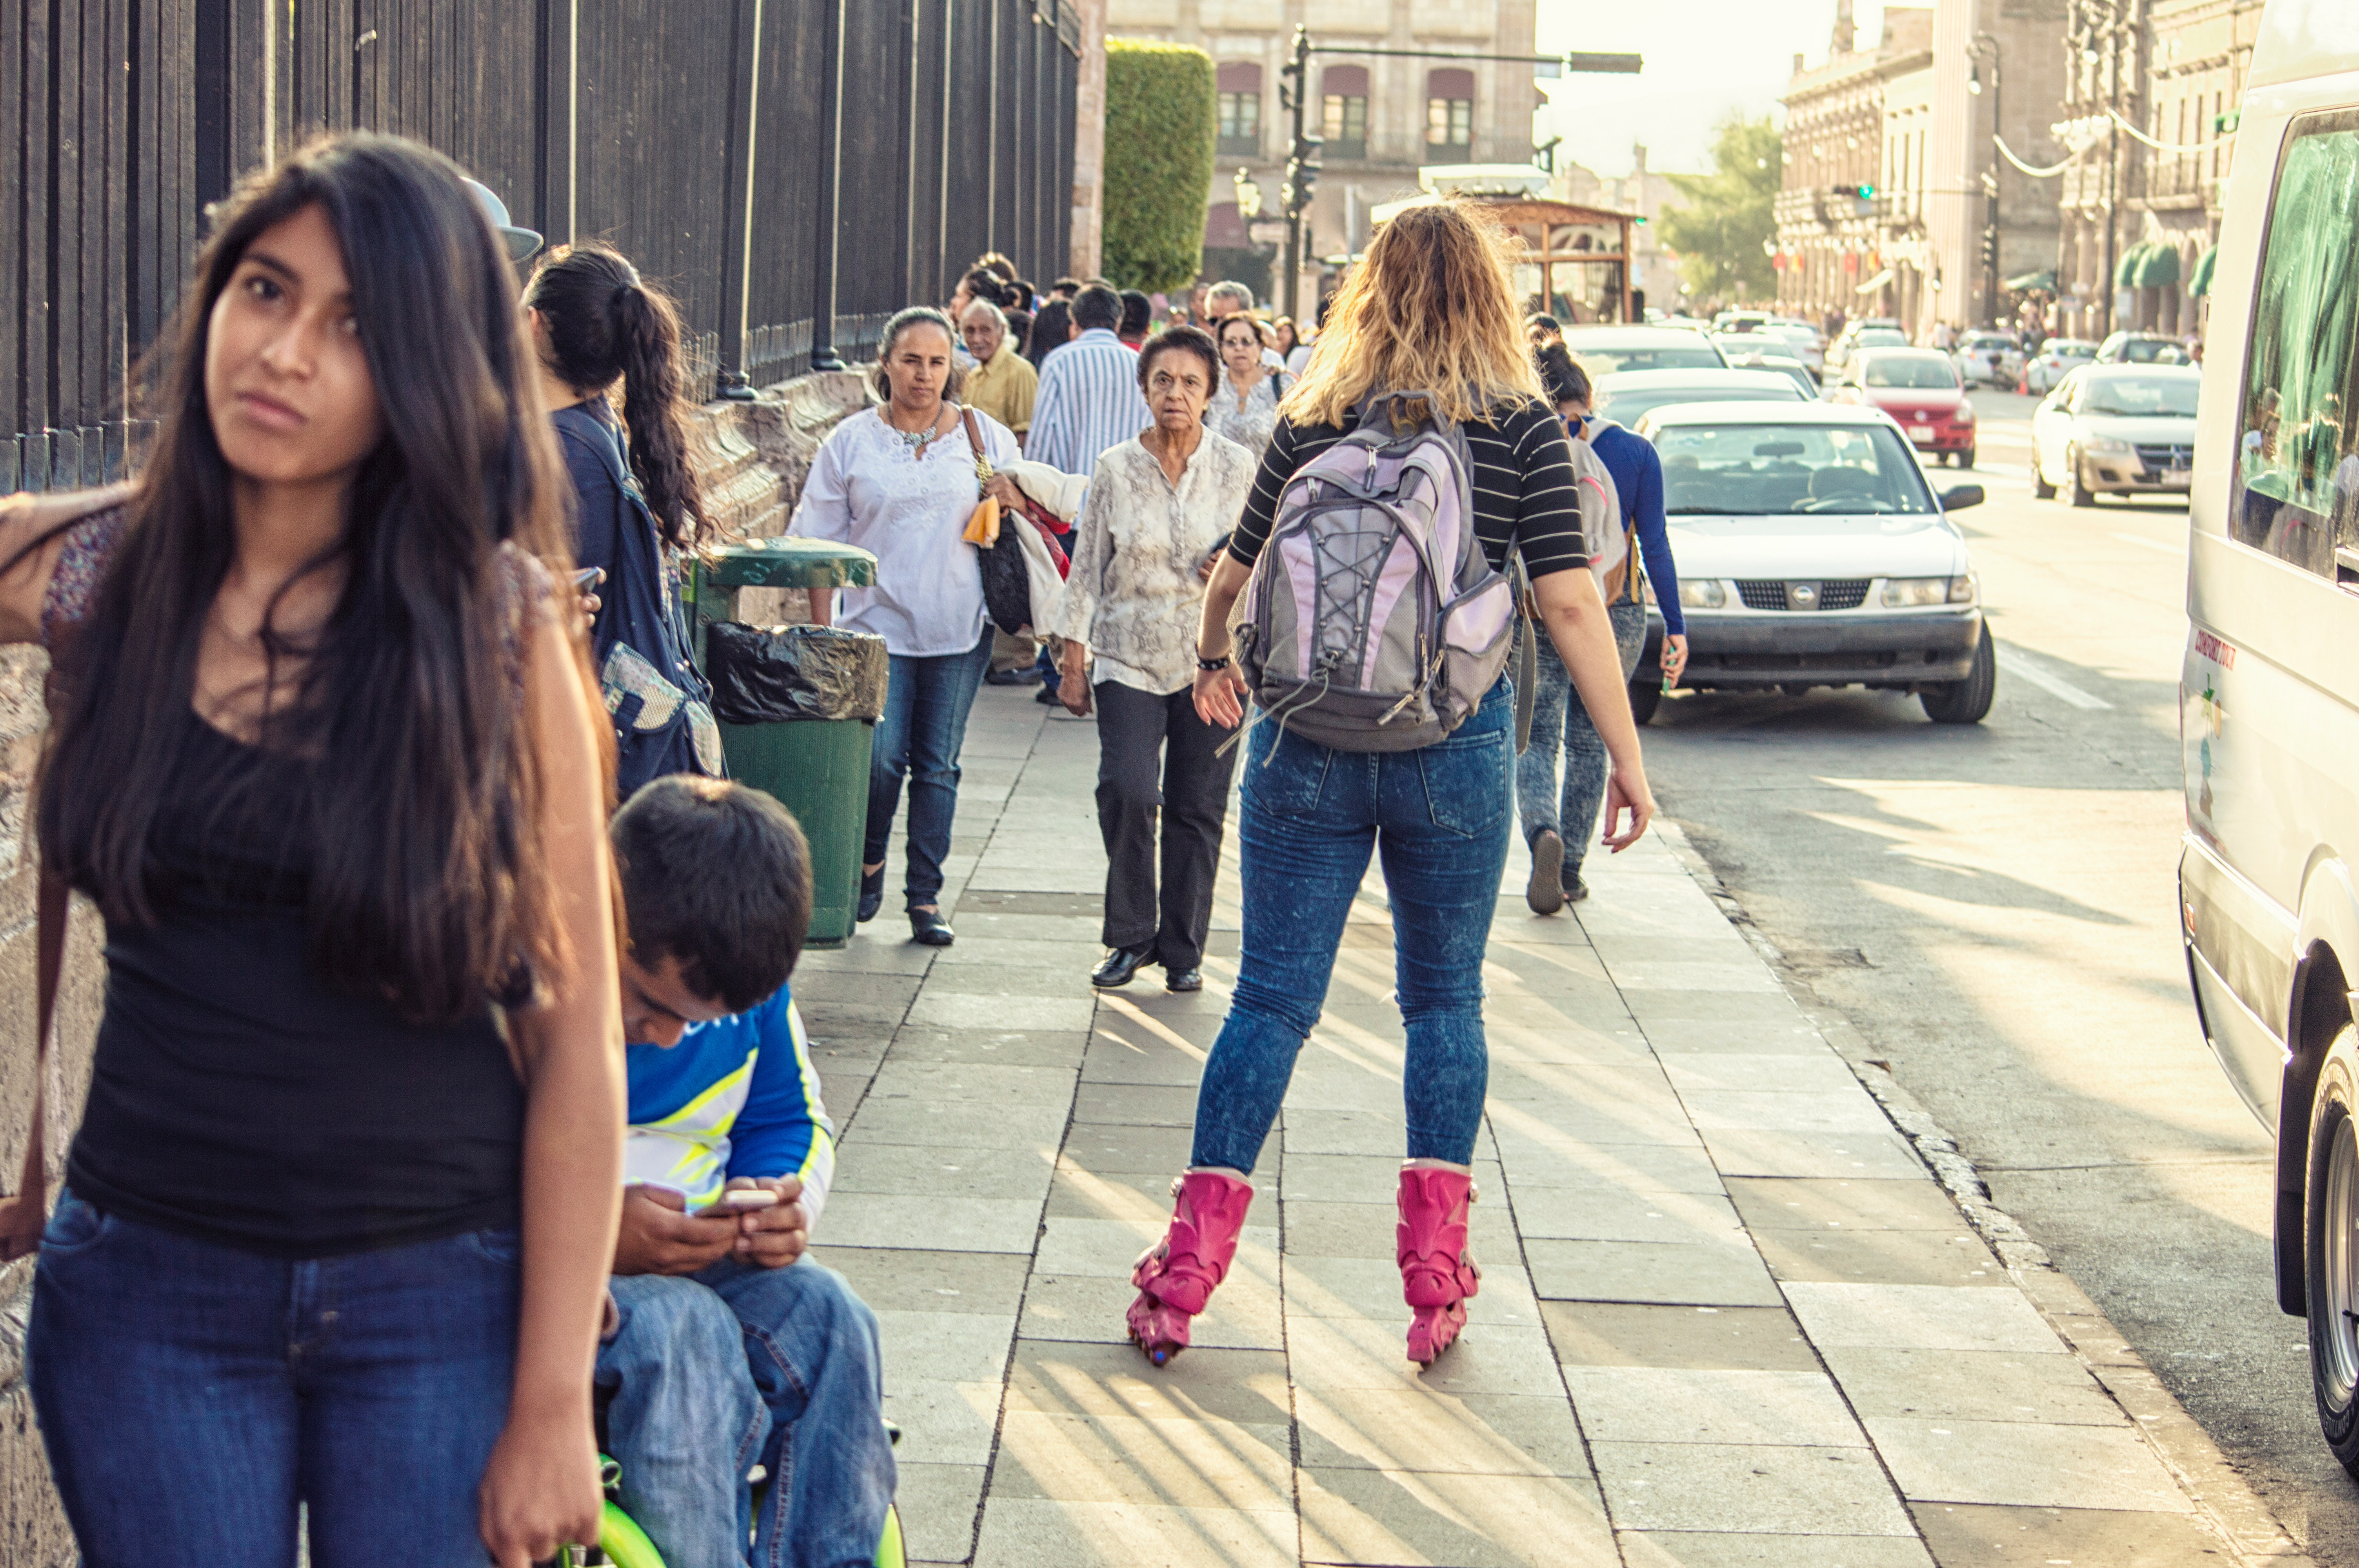 Woman in Black T-shirt, Blue Washed Denim Jeans and Pair of Pink Inline Skates Skating in Street, Afternoon, Pink, Wear, Urban, HQ Photo